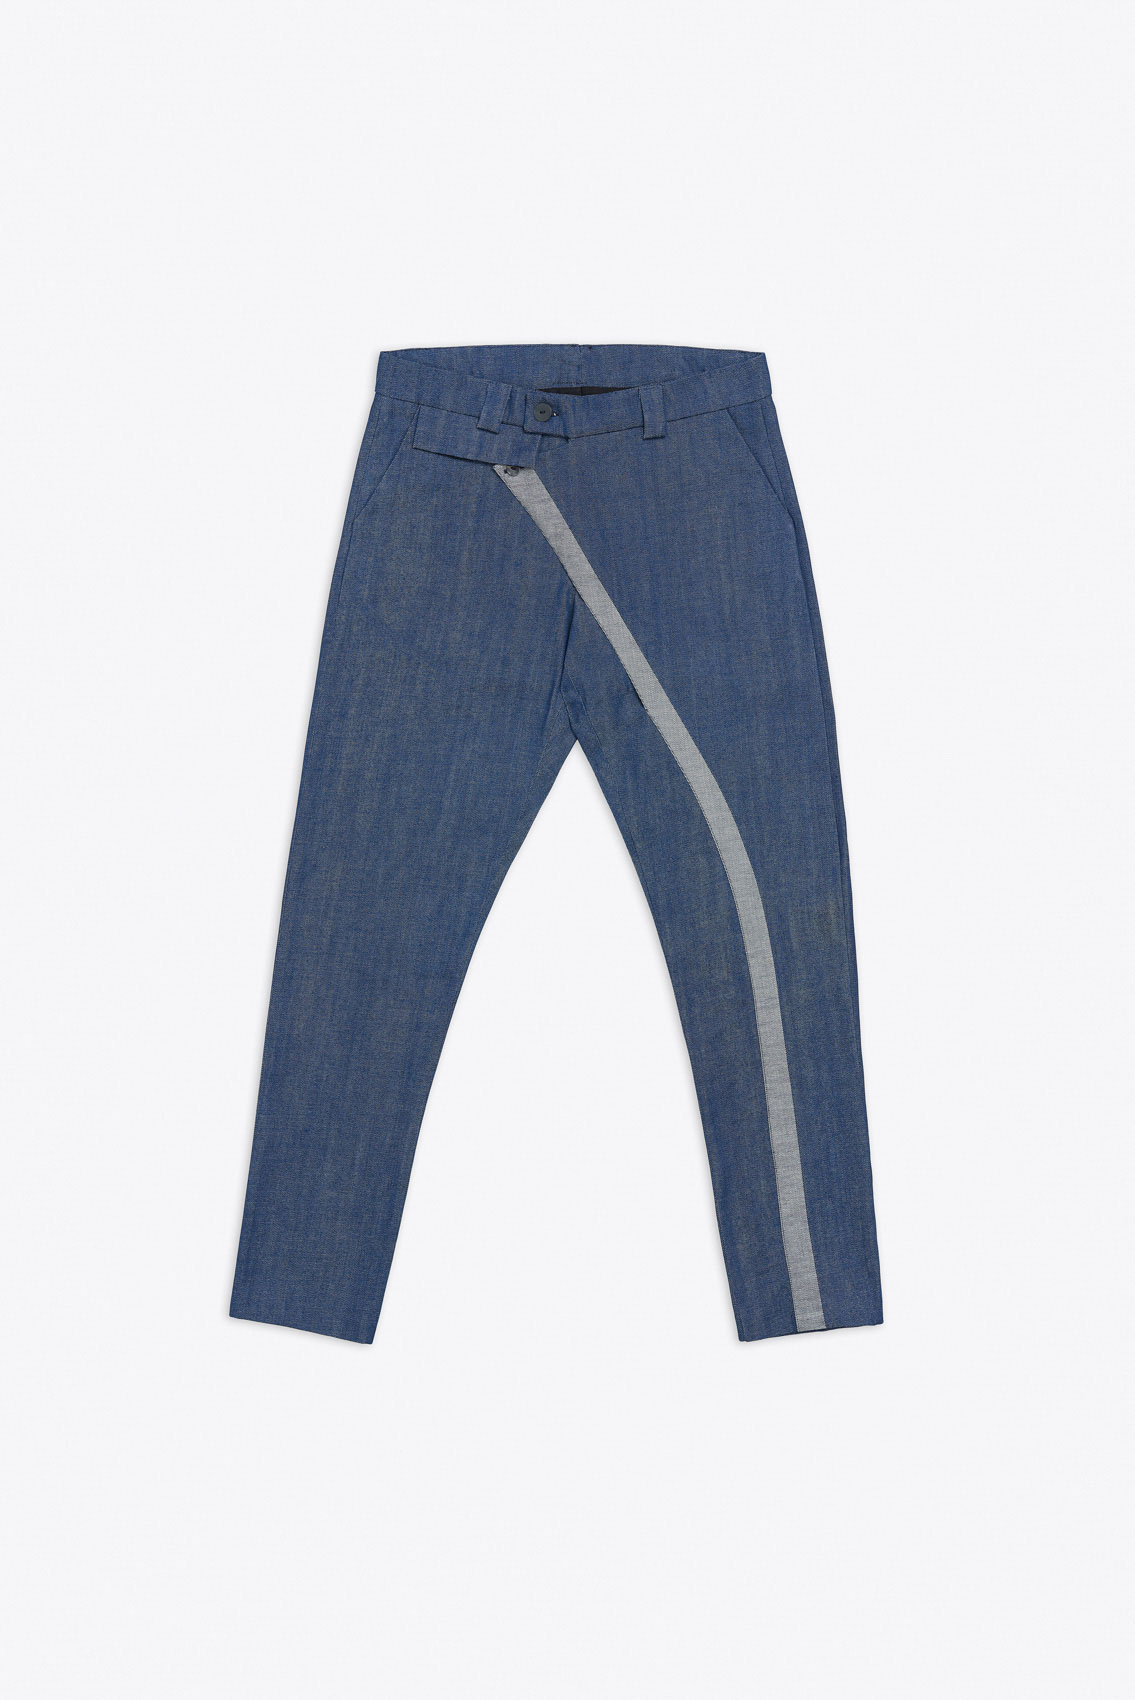 CONTRASTING EDGE SINGLE LEG CROSS OVER DENIM TROUSERS